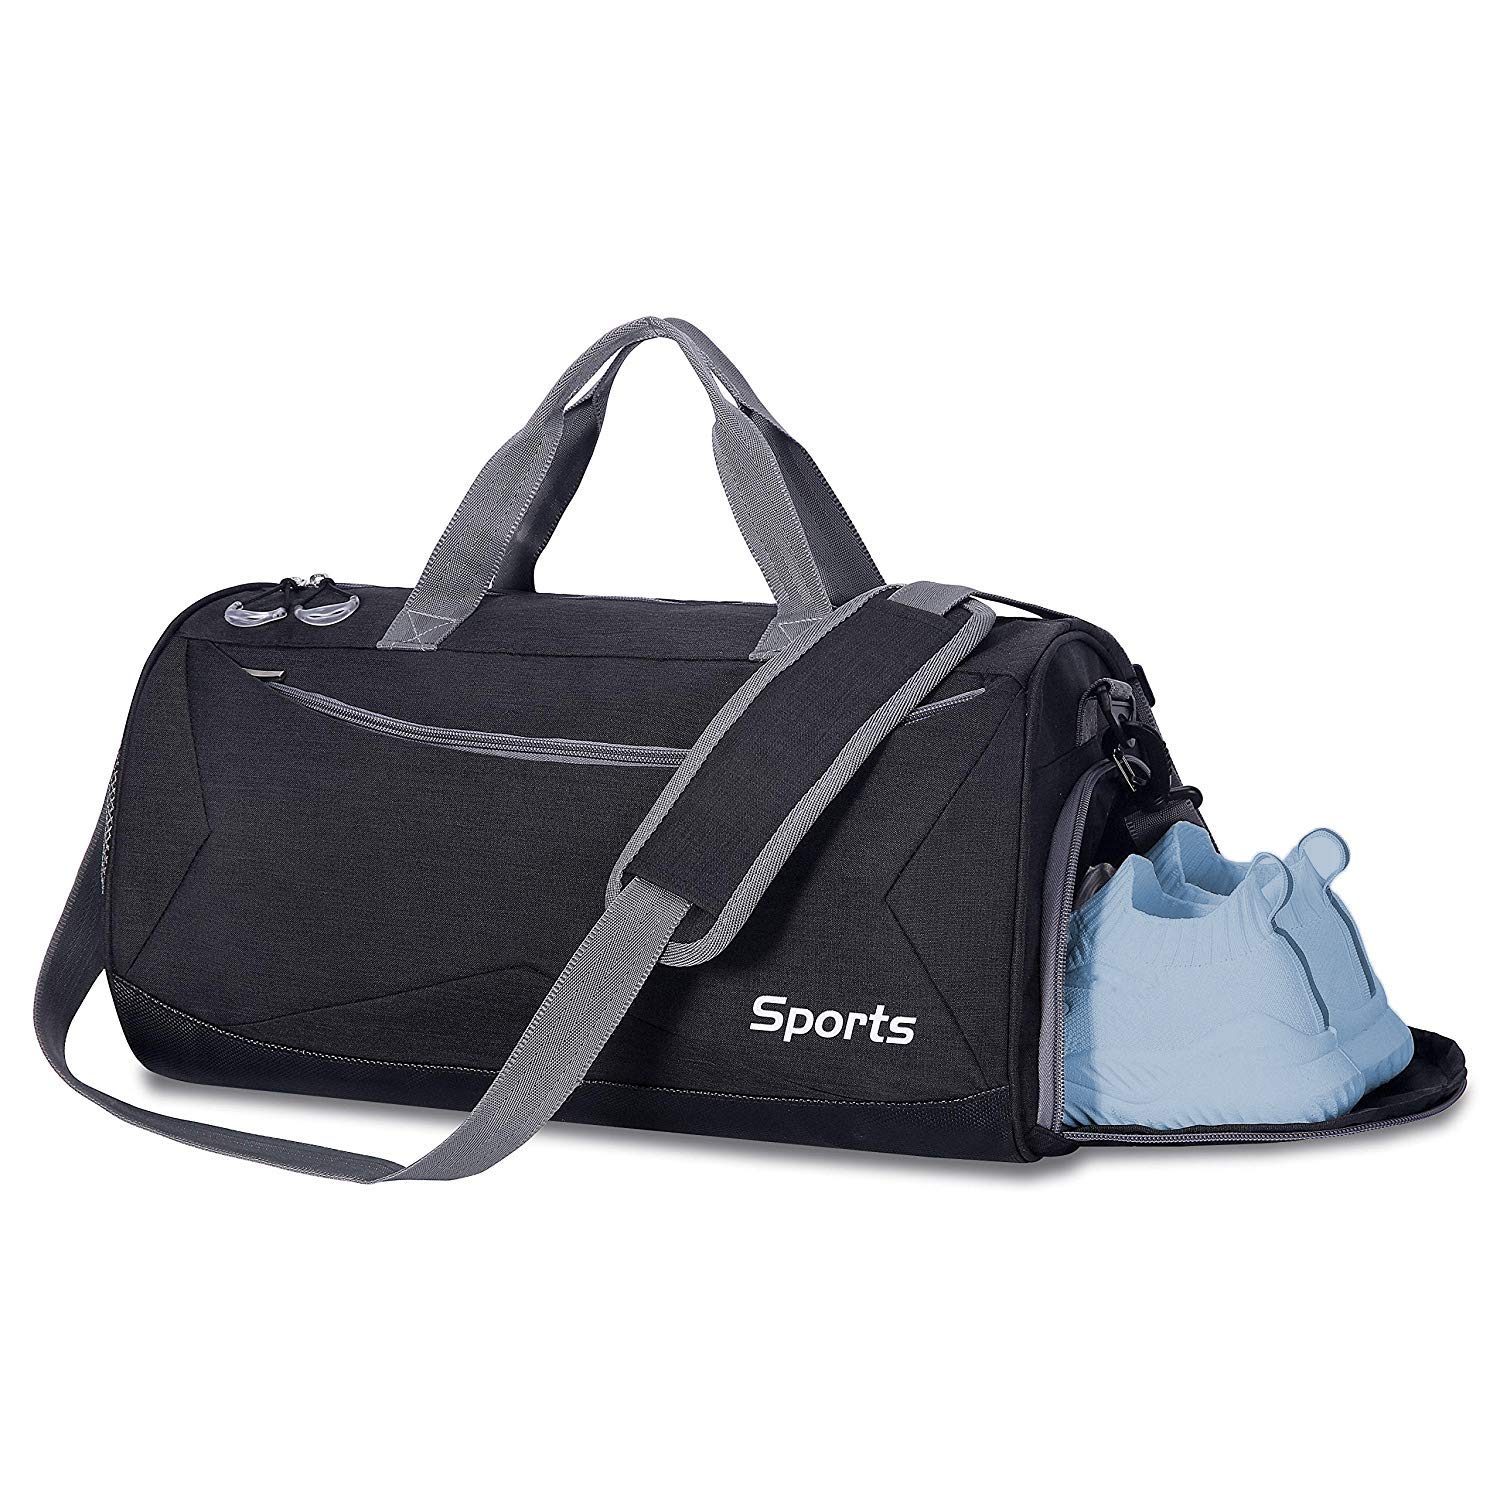 ASNYZH Sports Gym Bag with Wet Pocket Shoes Compartment Workout Duffel Bags for Women and Men,Black